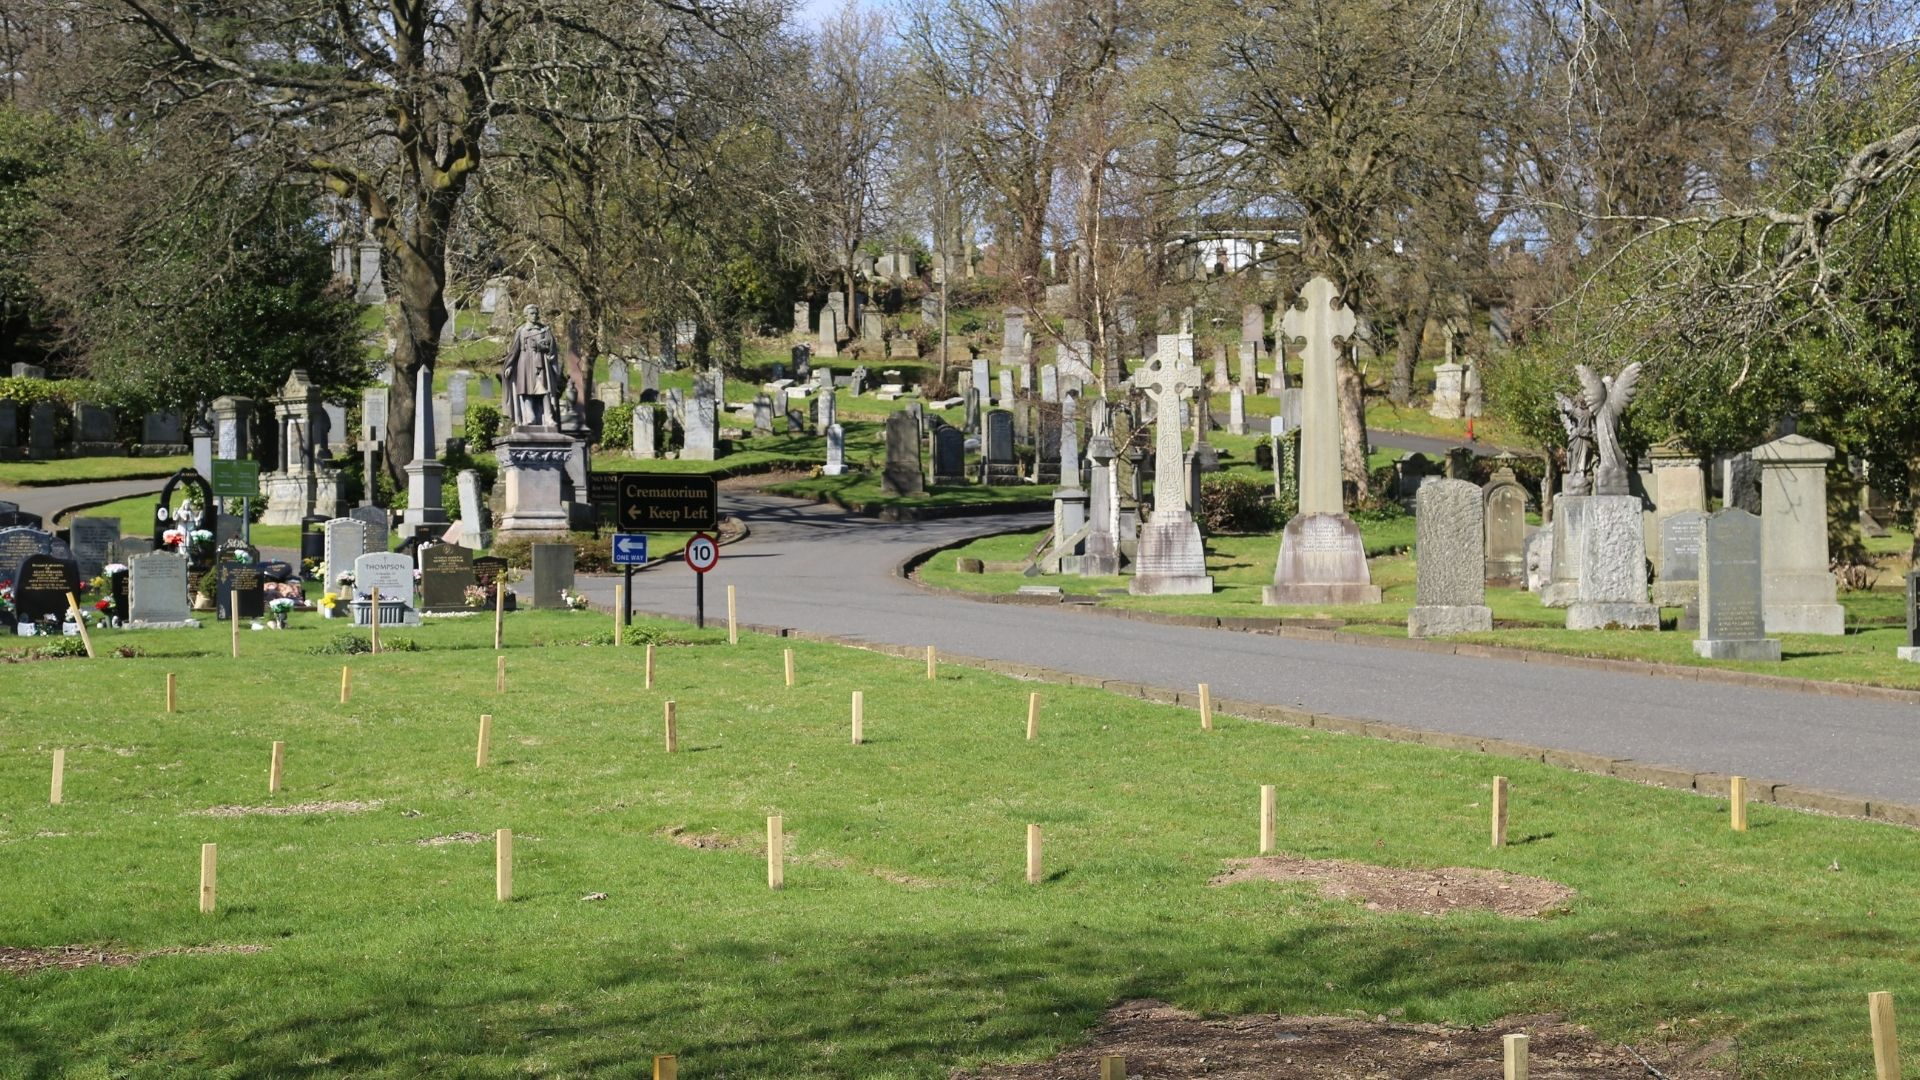 Burial plots at Woodside Cemetery in Paisley